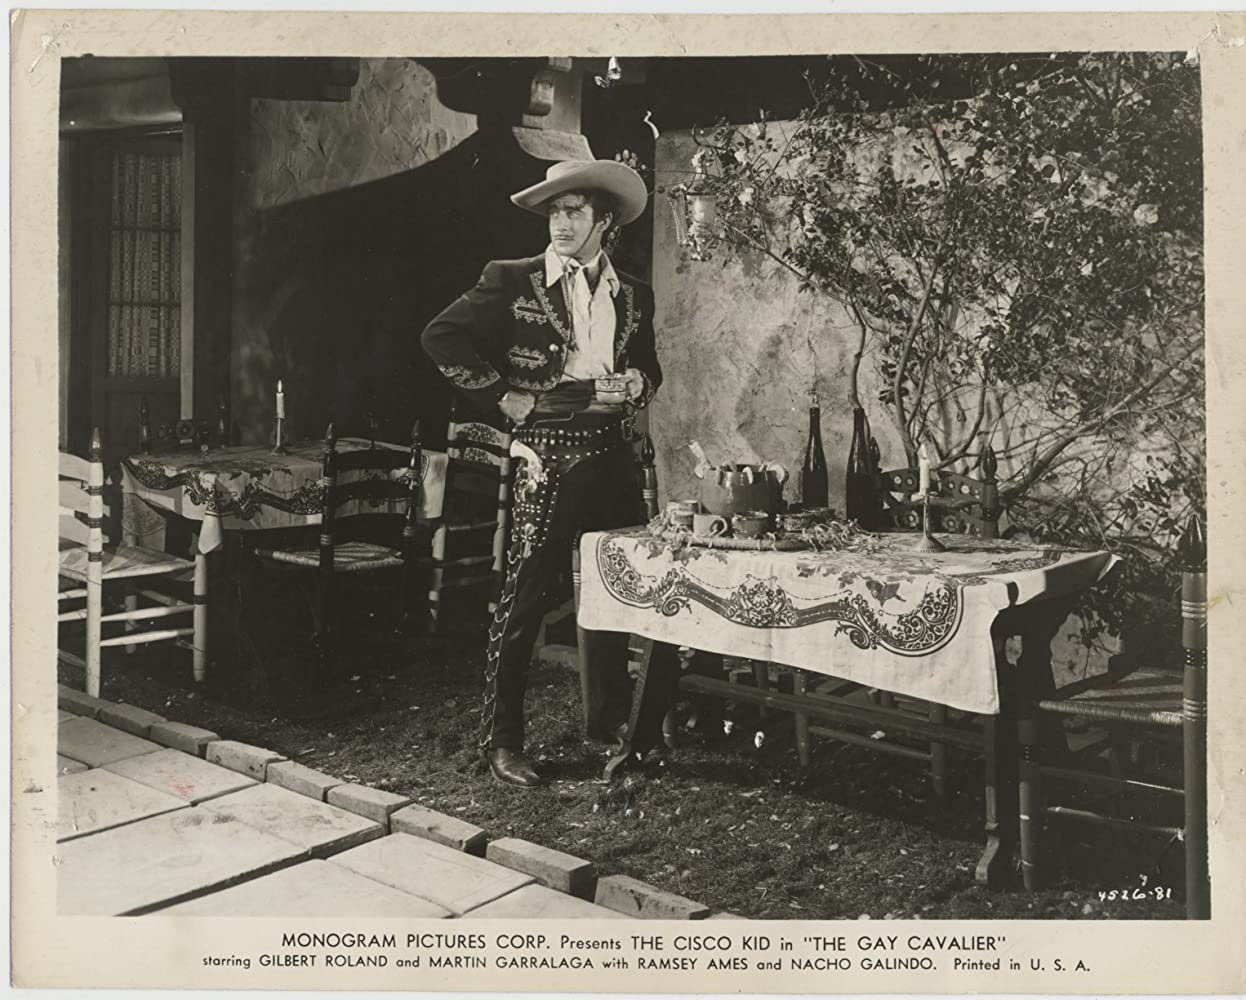 Gilbert Roland in The Gay Cavalier (1946)